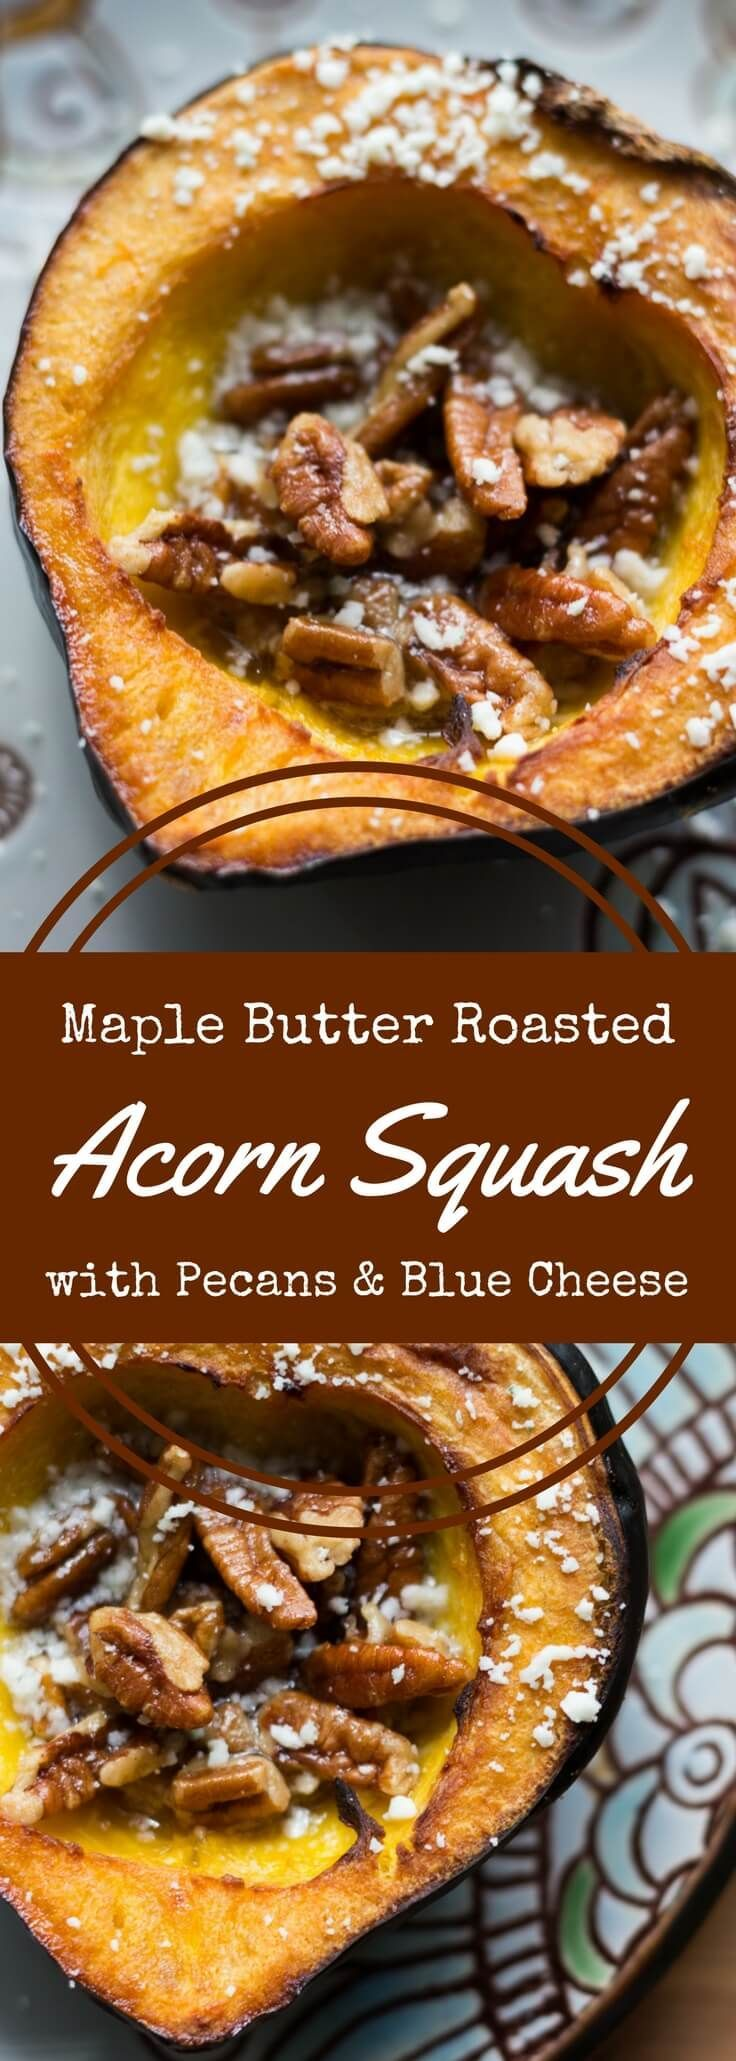 Rich, sweet roasted acorn squash doused in maple butter and filled with maple butter roasted pecans, then topped with blue cheese crumbles. via @recipeforperfec